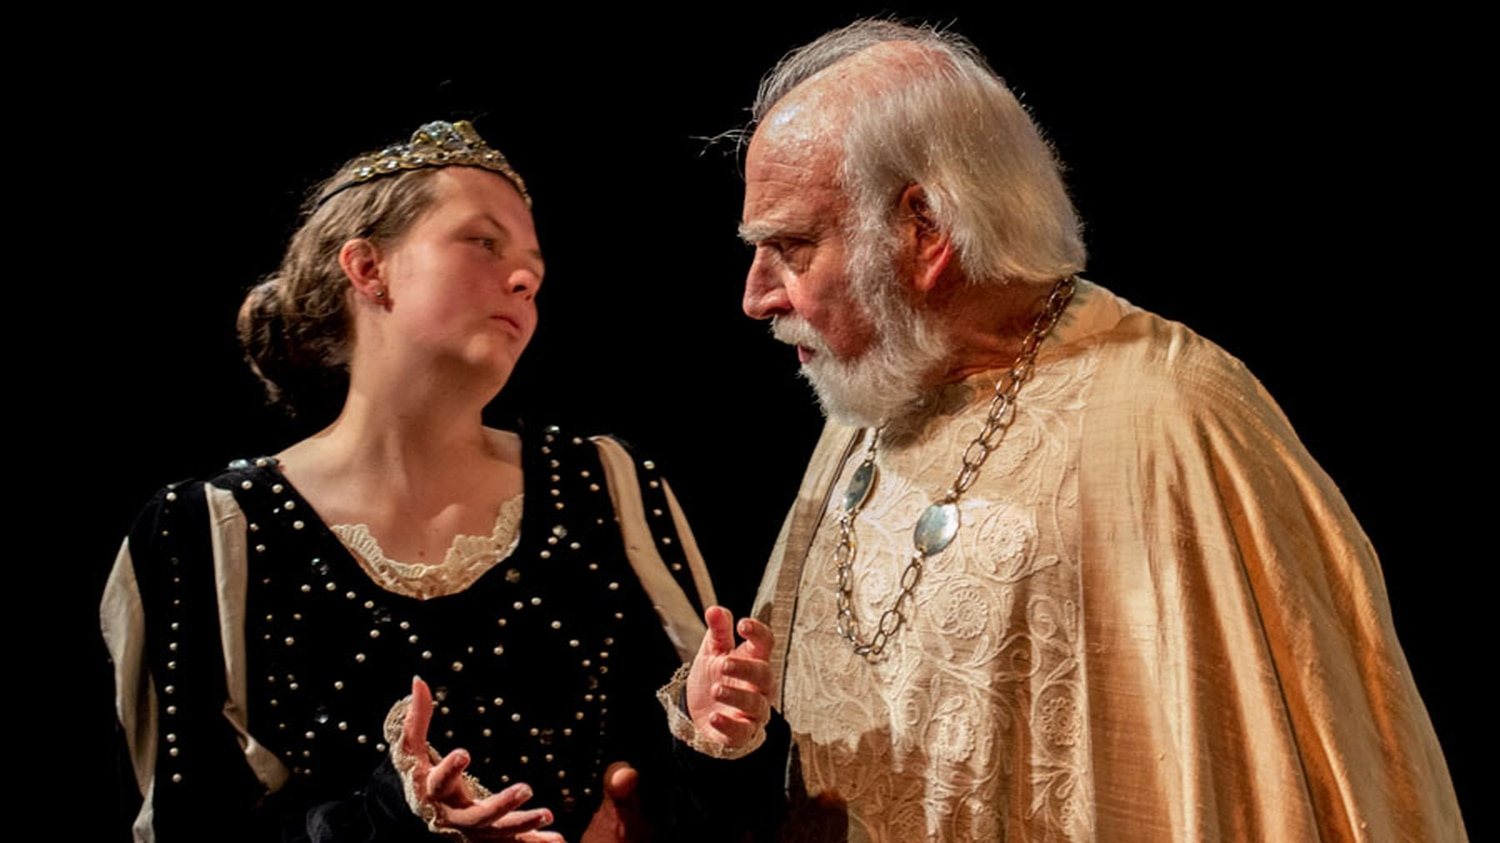 The International Shakespeare Center presents a scene from King Lear, currently up at the Adobe Rose Theatre.